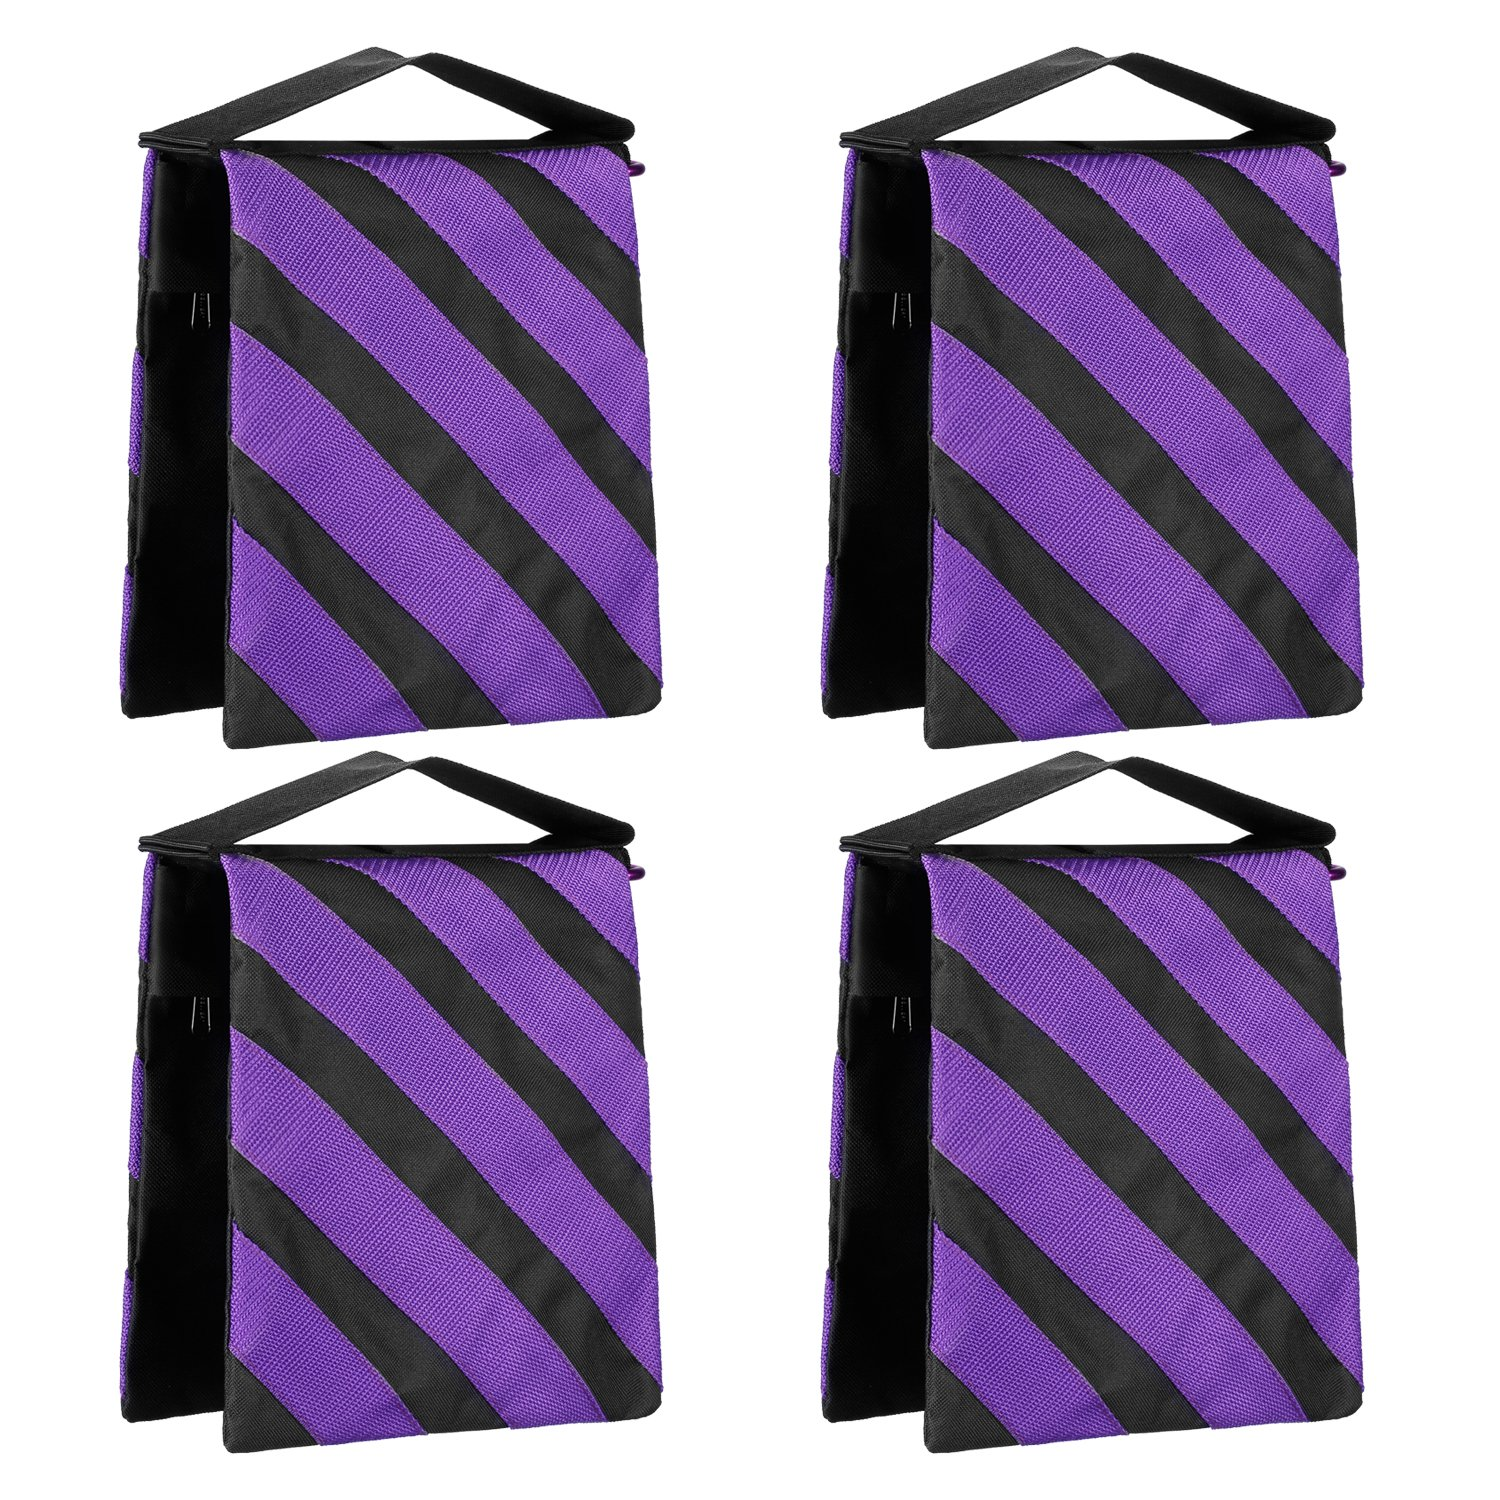 Neewer 4-Pack Empty Photographic Sandbag Studio Video Stage Film Sand Bag Saddlebag - 9x10 inches/23x25 centimeters, 20 pounds Load-bearing for Light Stands, Boom Arms, Tripods (Purple/Black) 90091816